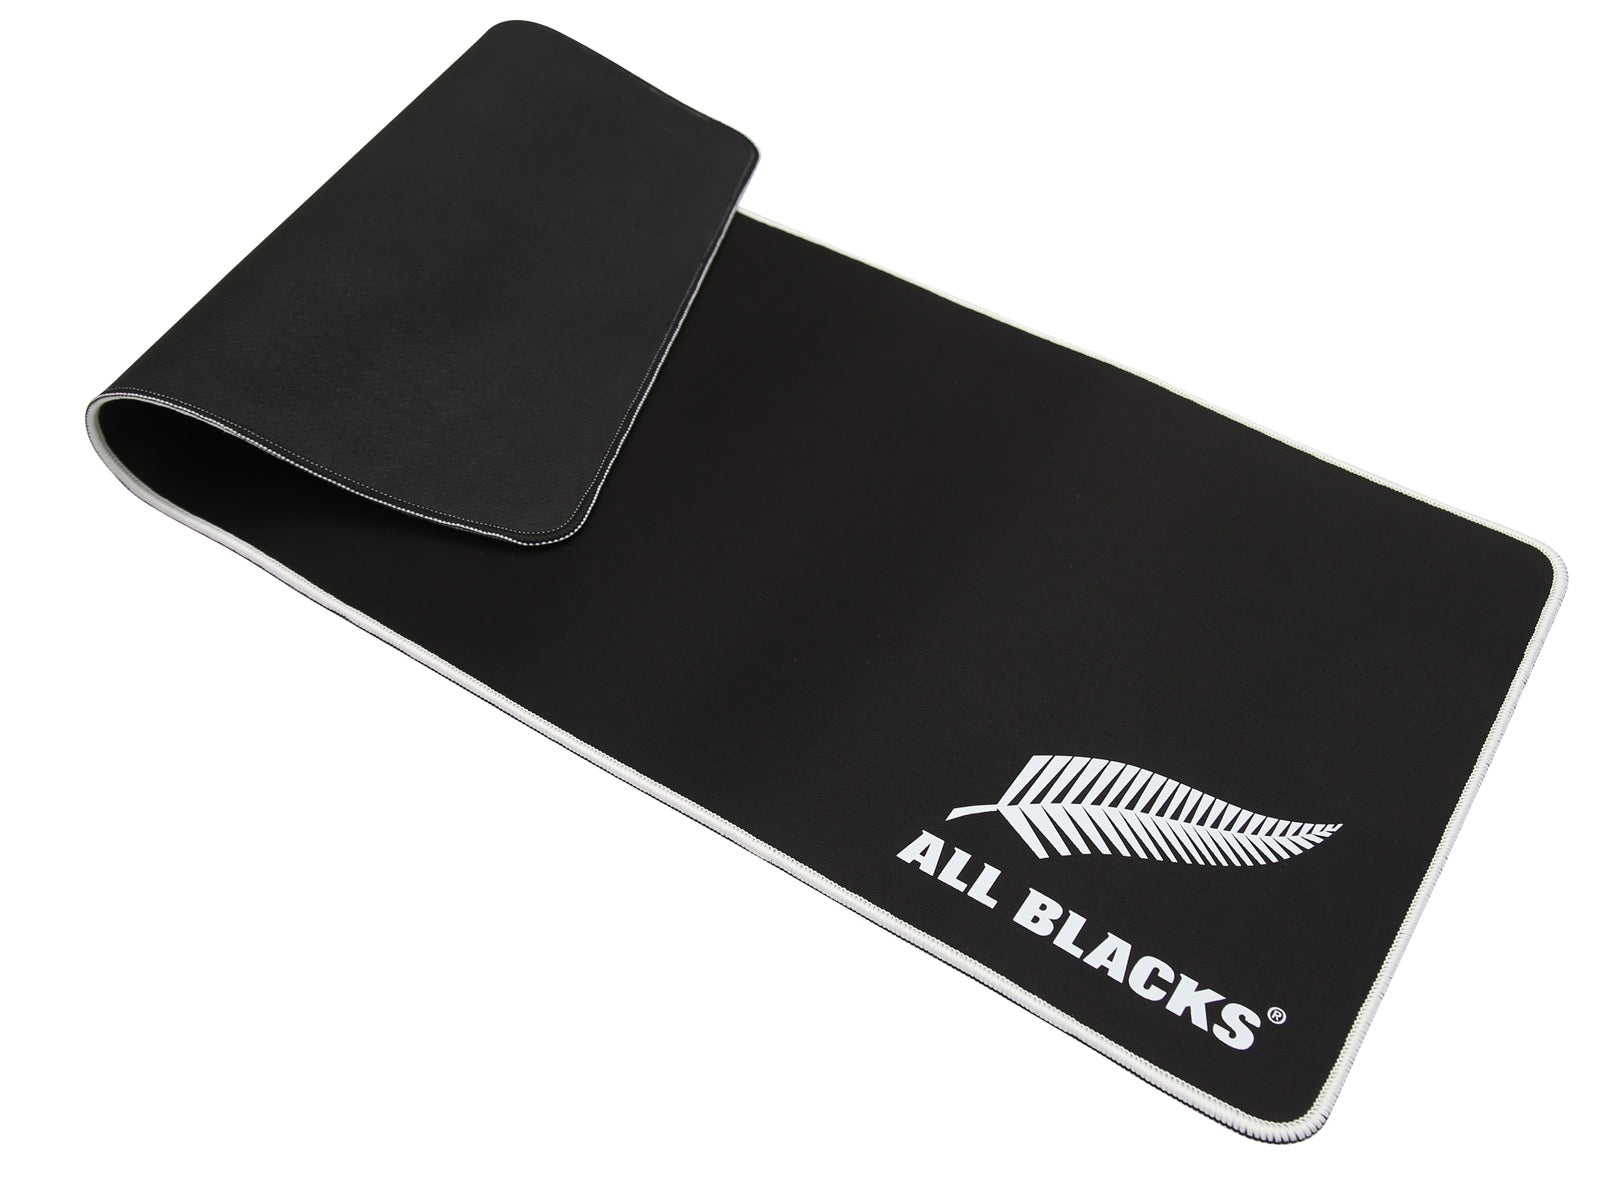 Playmax Mouse Mat X2 - All Blacks Edition - PC Games